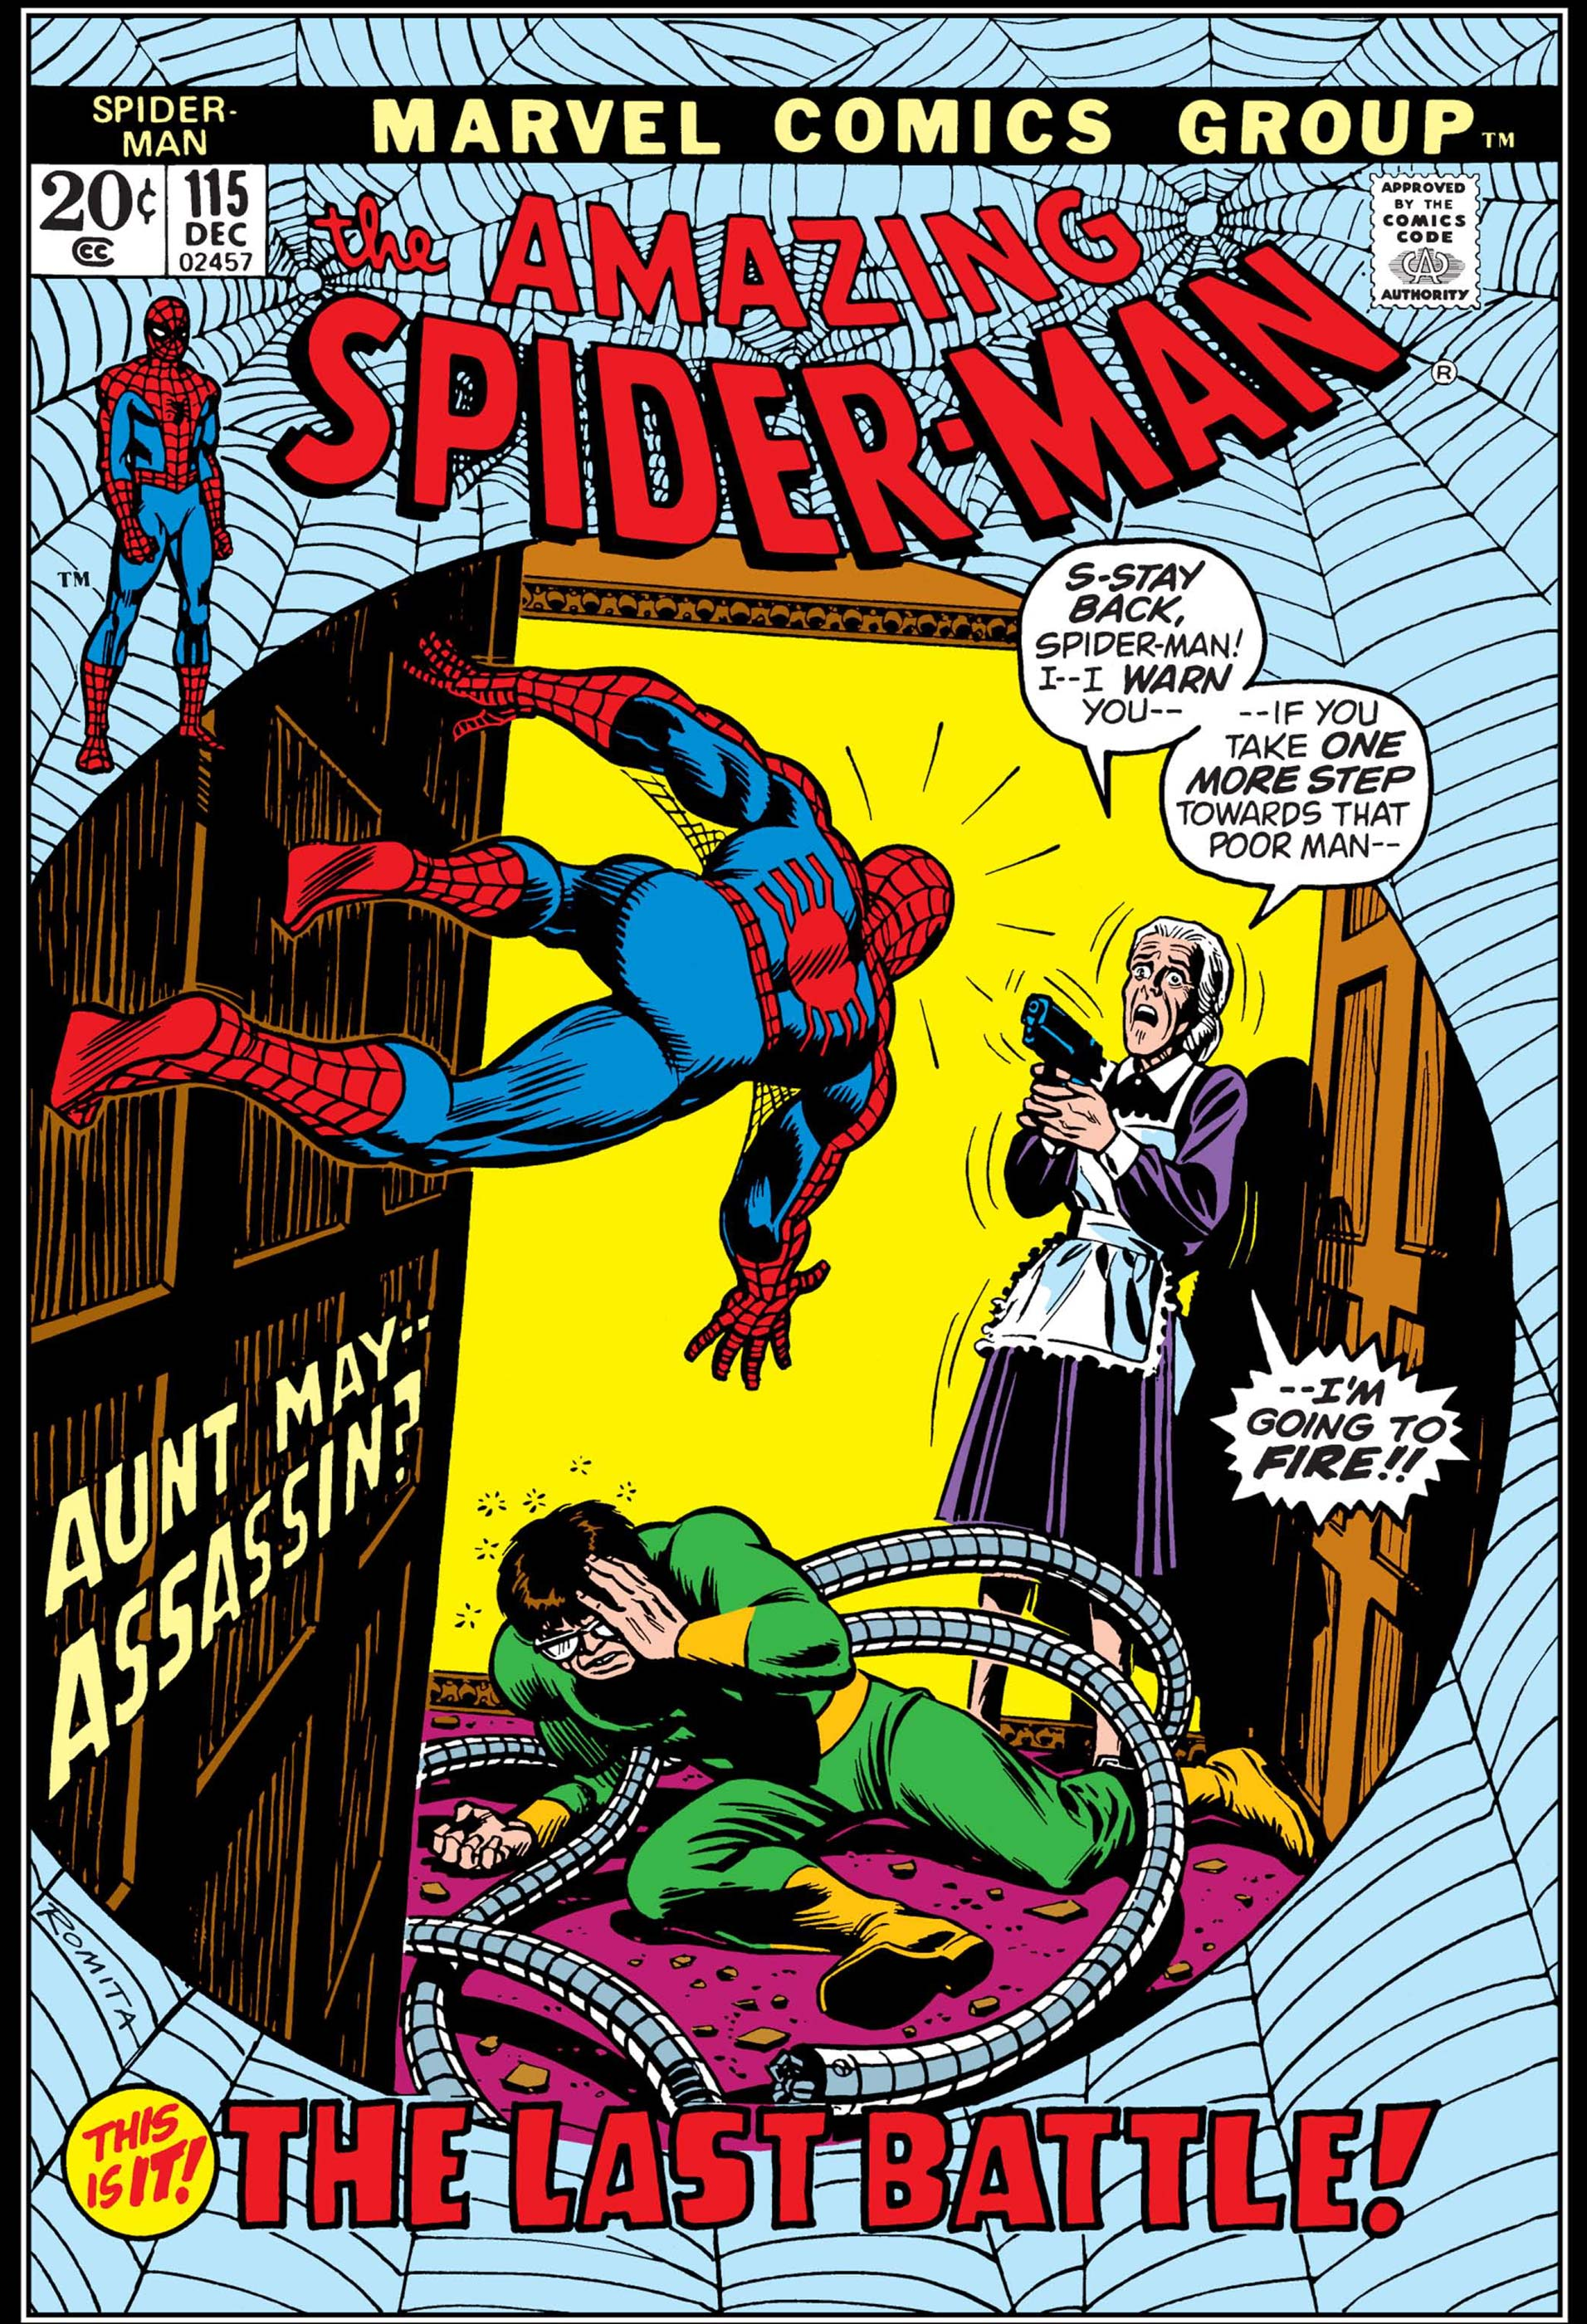 The Amazing Spider-Man (1963) #115